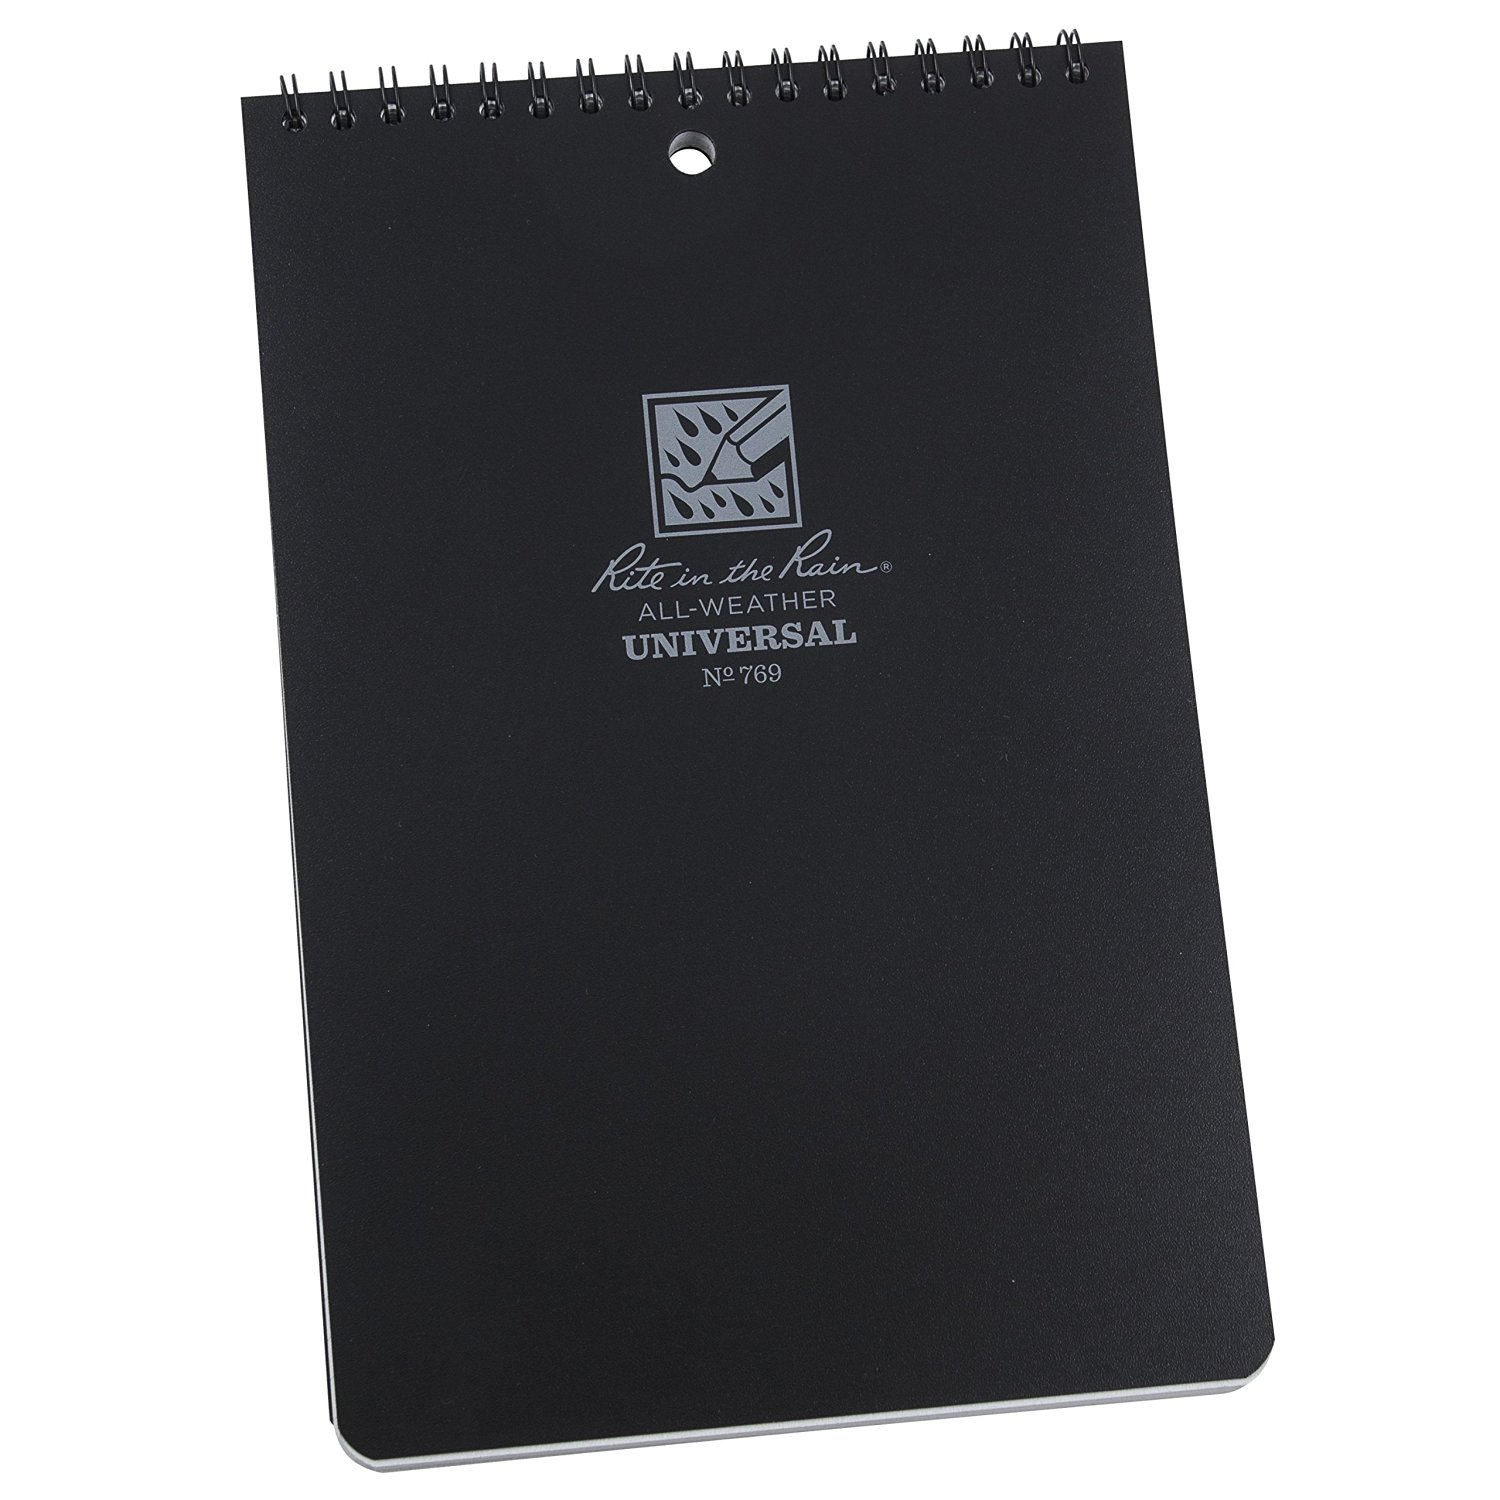 """Rite in the Rain All-Weather 6"""" x 9"""" Top-Spiral Notebook, Black Cover, Universal Pattern (No. 769)"""